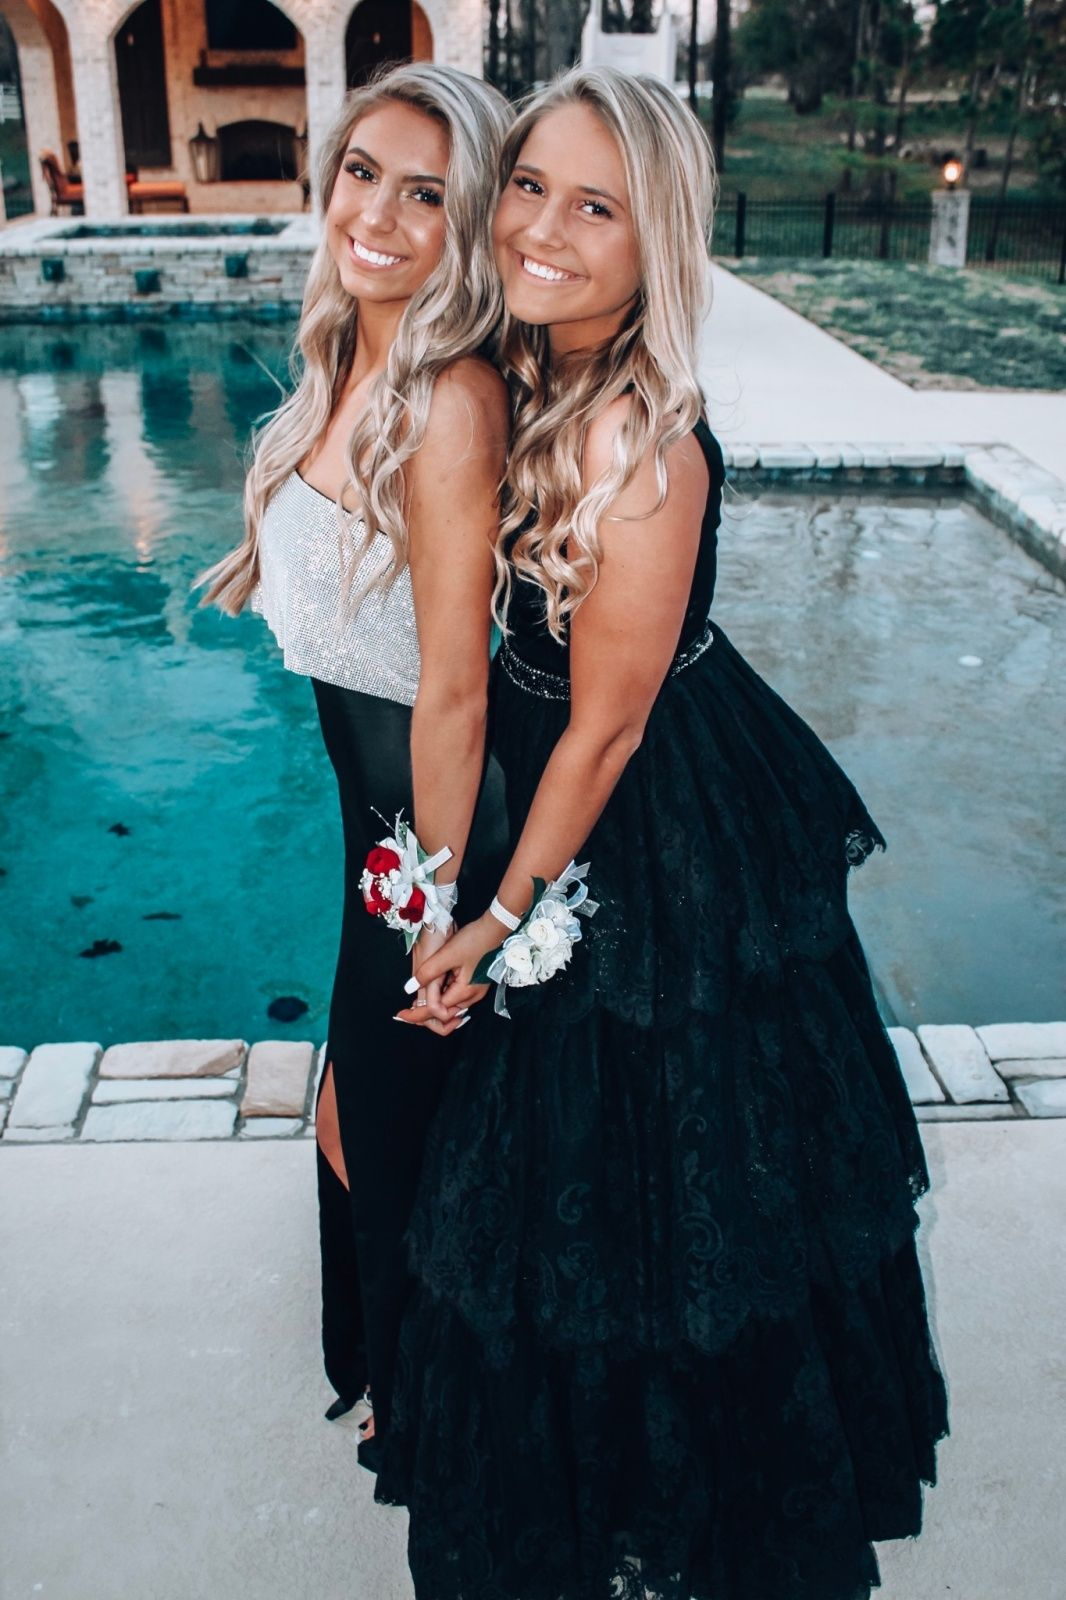 Gallery Carolineconnelly Vsco Cute Prom Dresses Prom Photos Prom Goals [ 1600 x 1066 Pixel ]